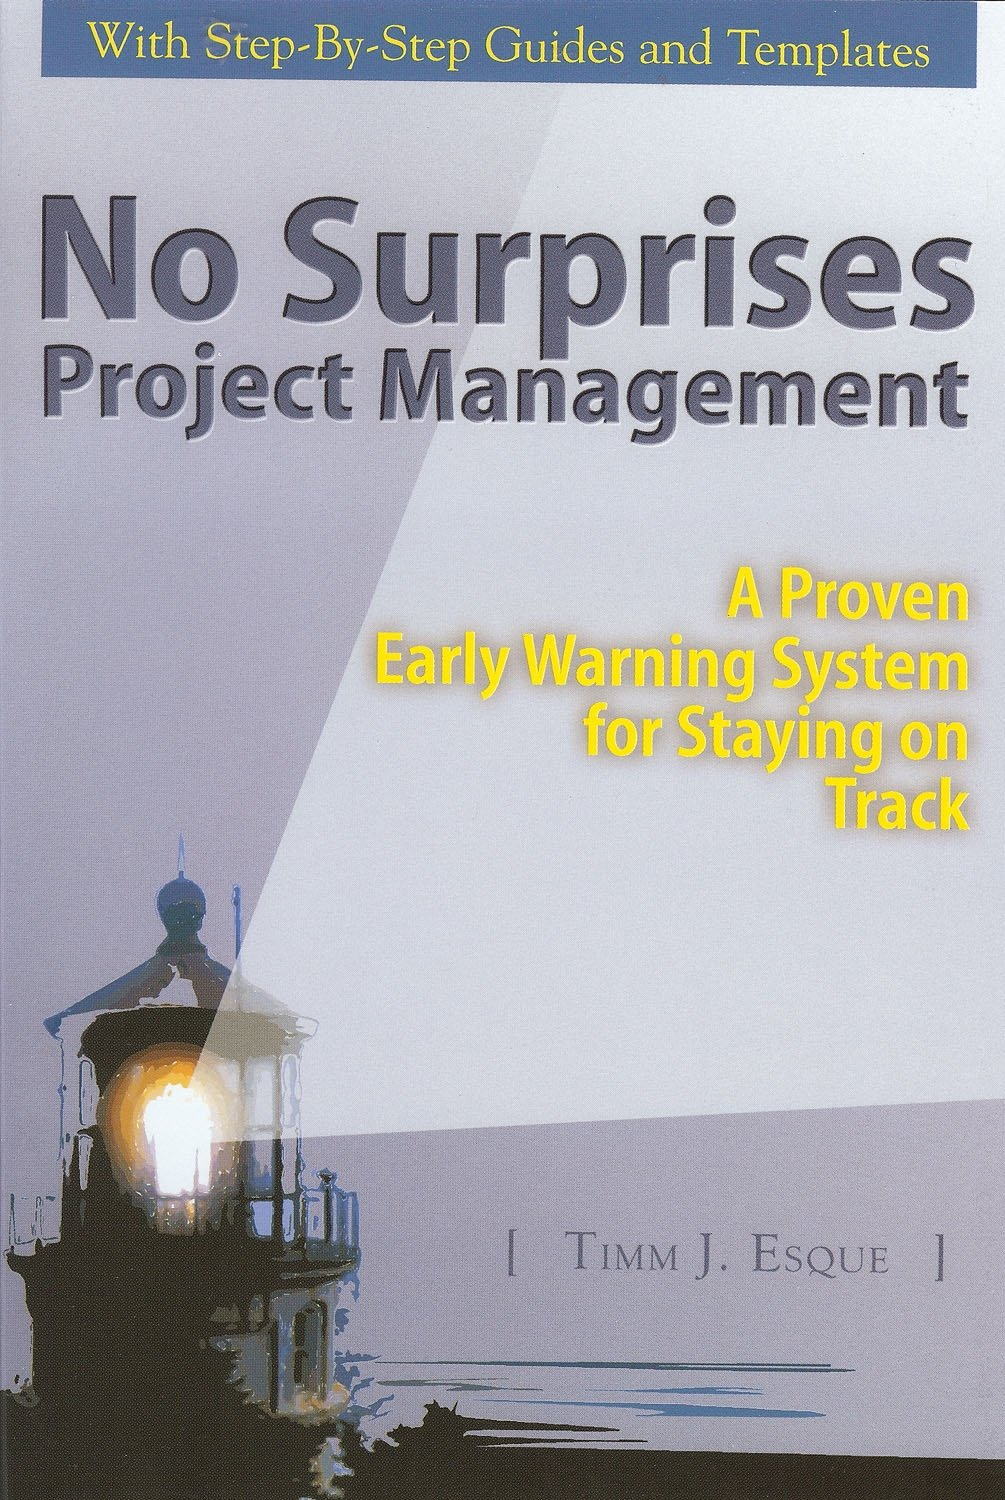 No Surprises Project Management: A Proven Early Warning System for Staying on Track